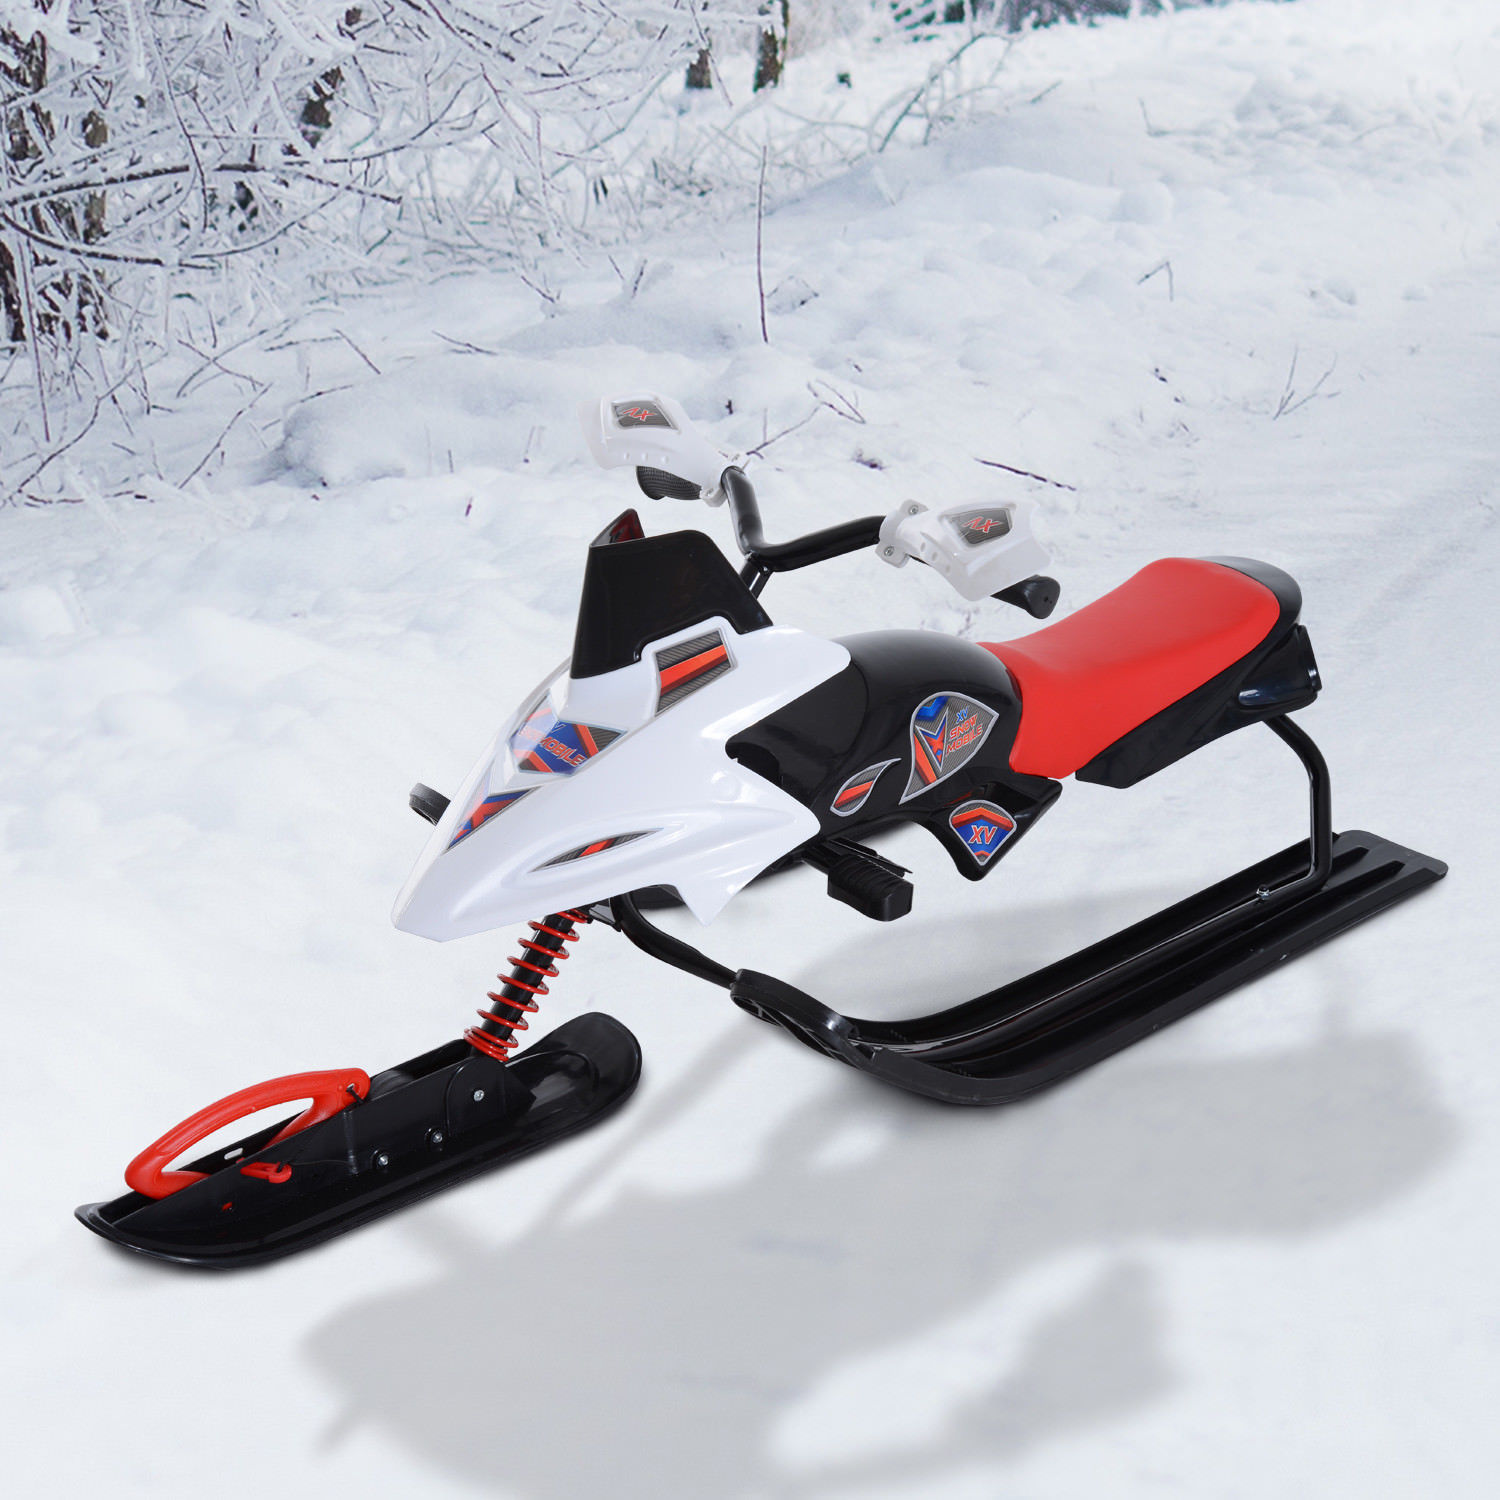 snow mobile scooter winter sled motor snow racer rush. Black Bedroom Furniture Sets. Home Design Ideas